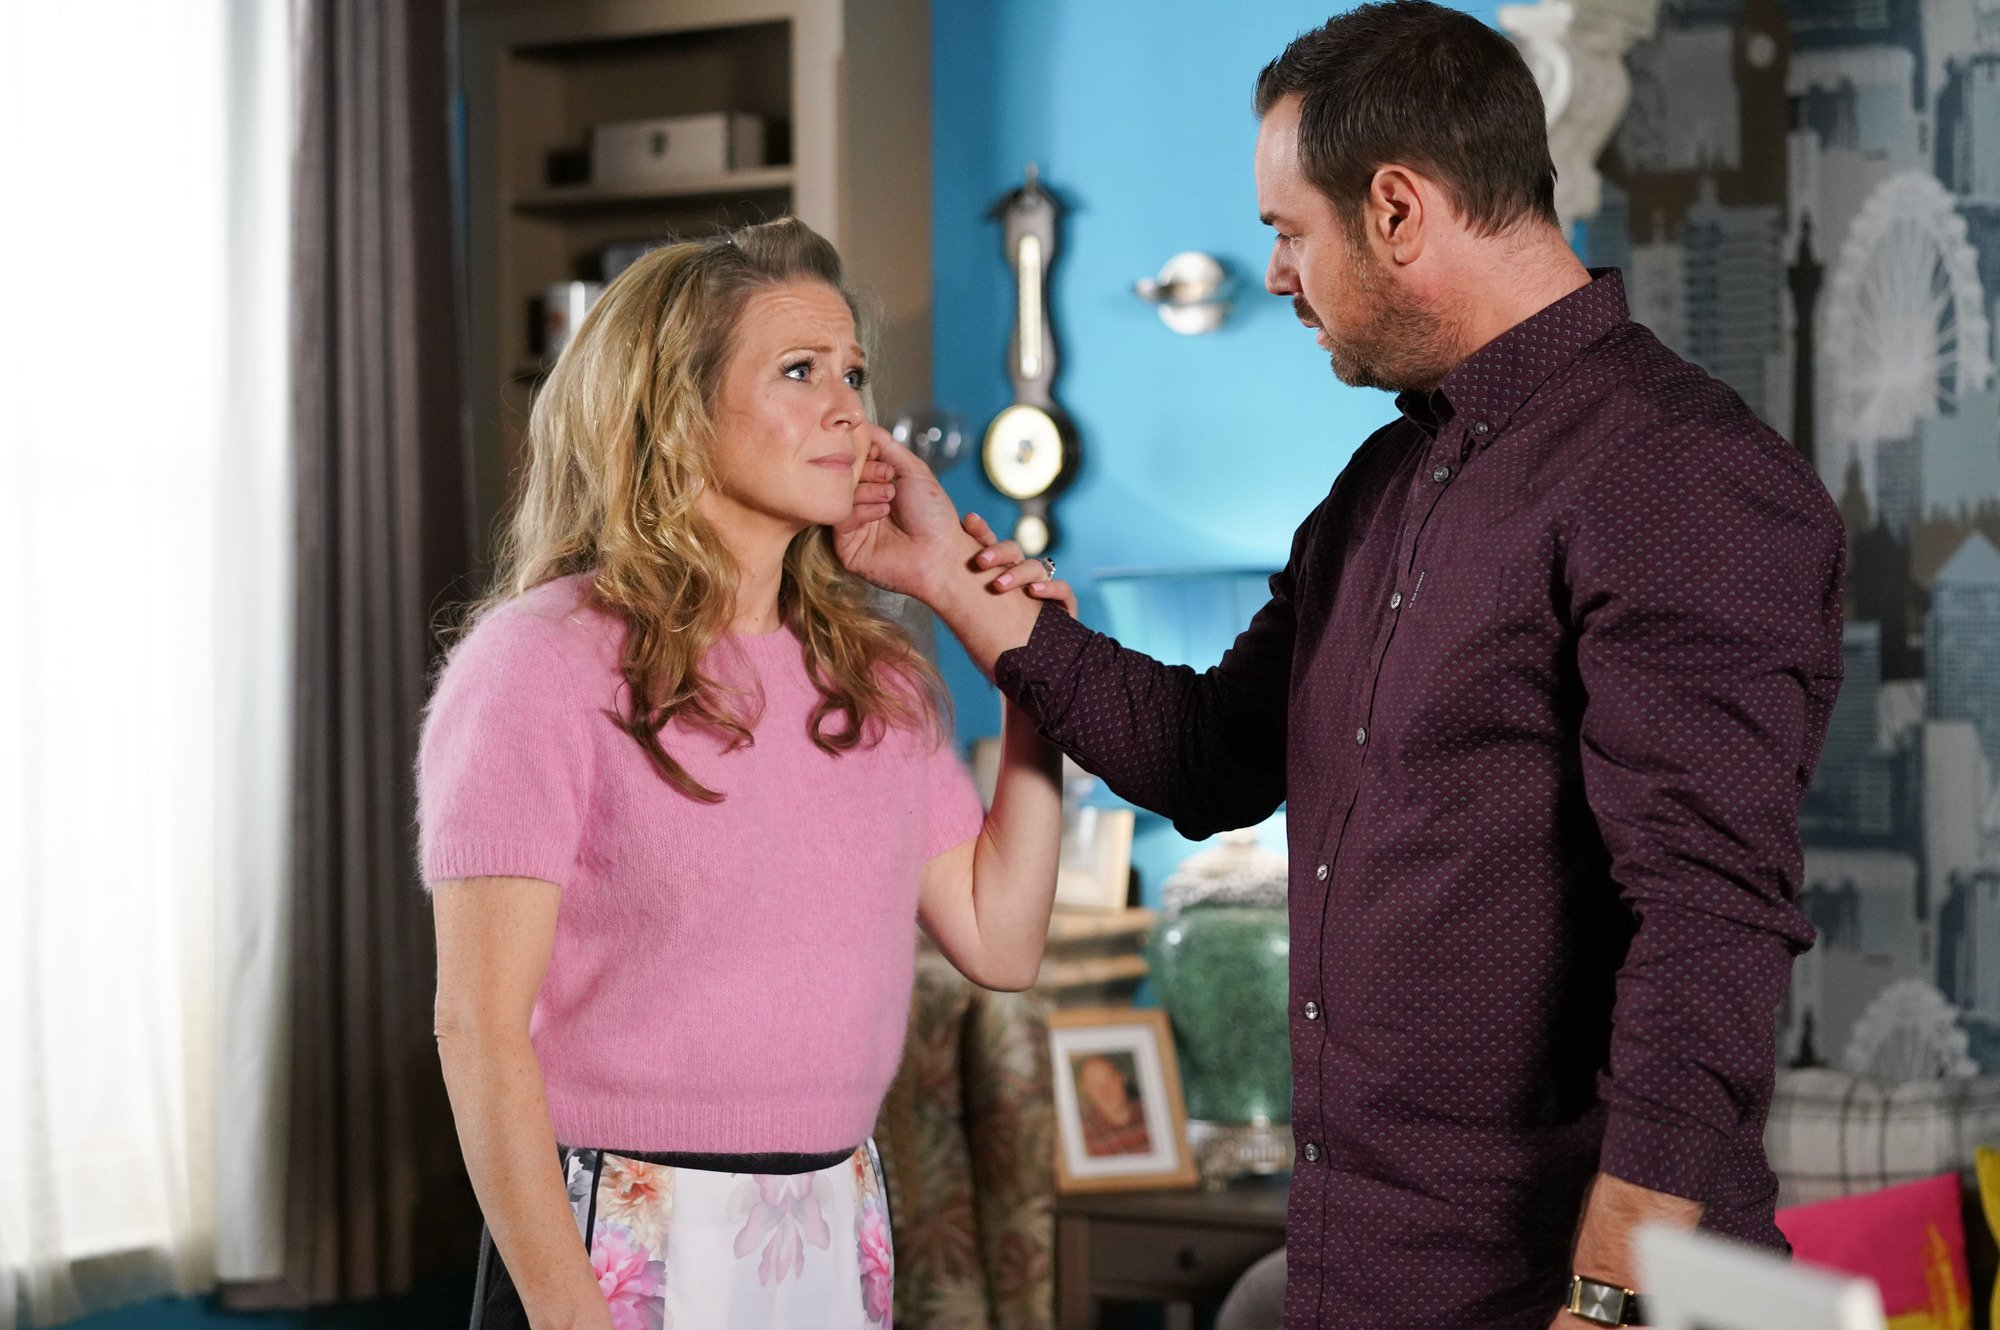 WARNING: Embargoed for publication until 00:00:01 on 08/01/2019 - Programme Name: EastEnders - January - March 2019 - TX: 17/01/2019 - Episode: EastEnders - January - March - 2019 - 5852 (No. 5852) - Picture Shows: *STRICTLY NOT FOR PUBLICATION UNTIL 00:01HRS TUESDAY 8th JANUARY 2019* Linda encourages Mick to open up Linda Carter (KELLIE BRIGHT), Mick Carter (DANNY DYER) - (C) BBC - Photographer: Kieron McCarron